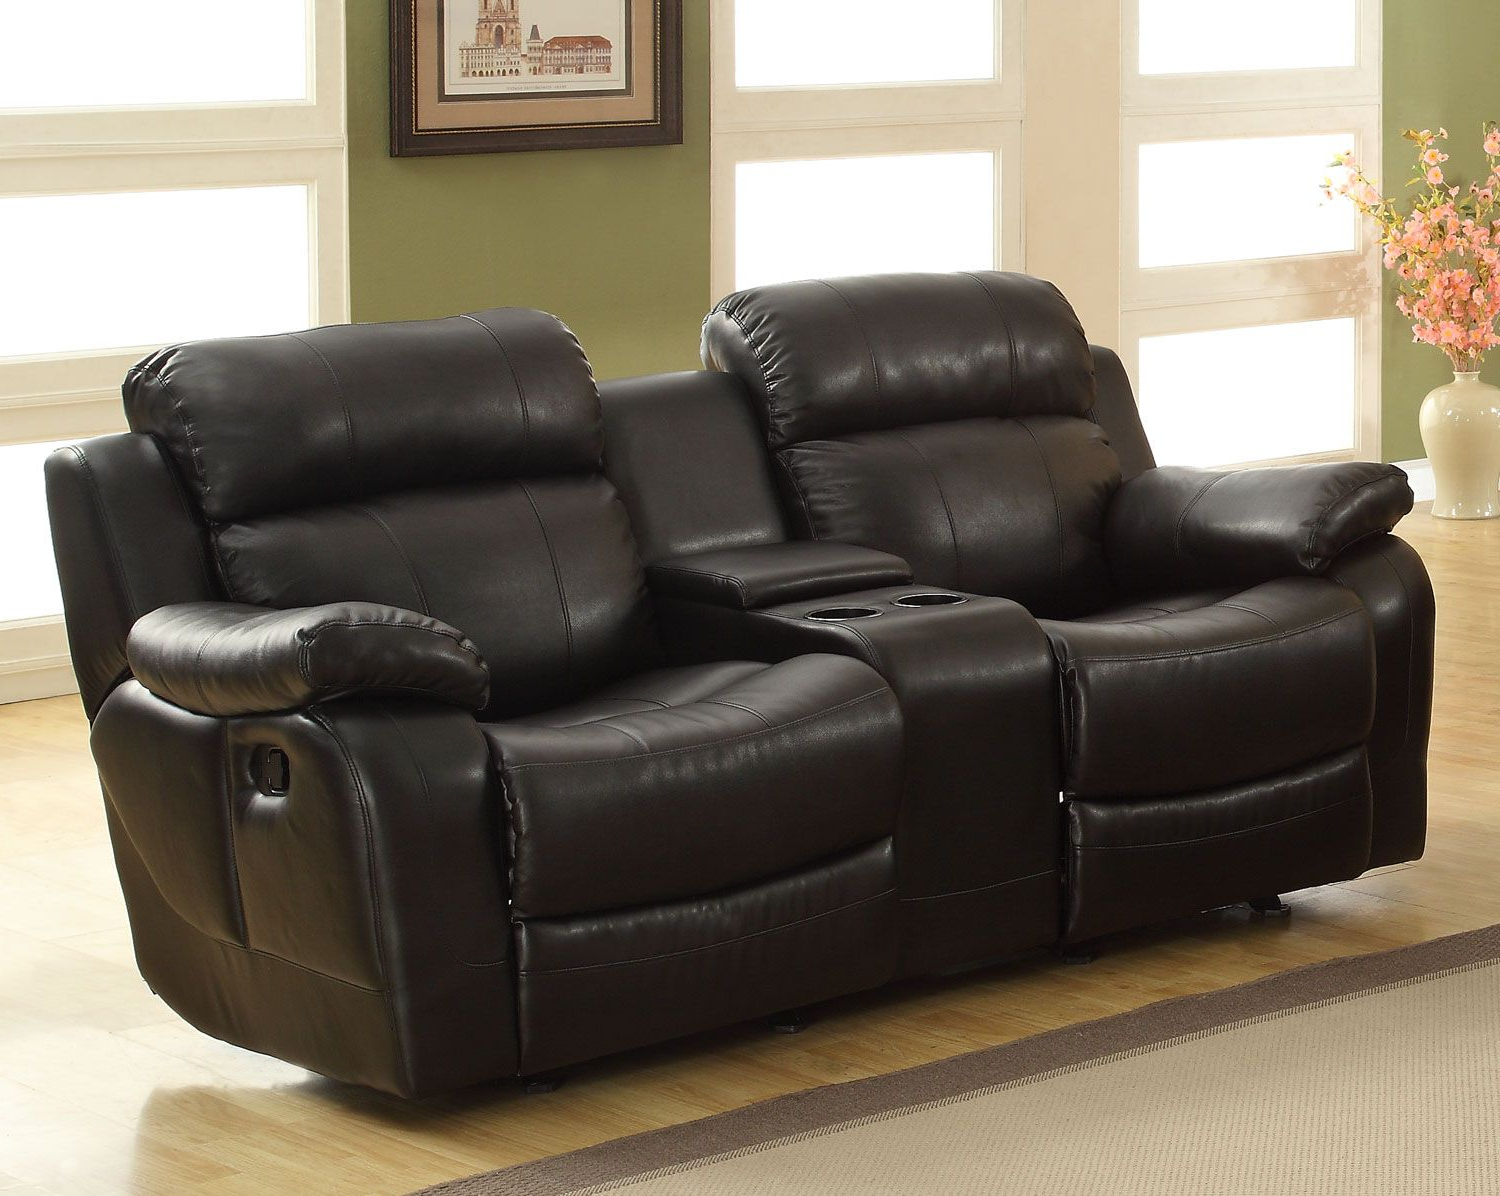 Travis Dk Grey Leather 6 Piece Power Reclining Sectionals With Power Headrest & Usb Inside Widely Used Homelegance Marille Love Seat Glider Recliner With Center Console (View 13 of 20)